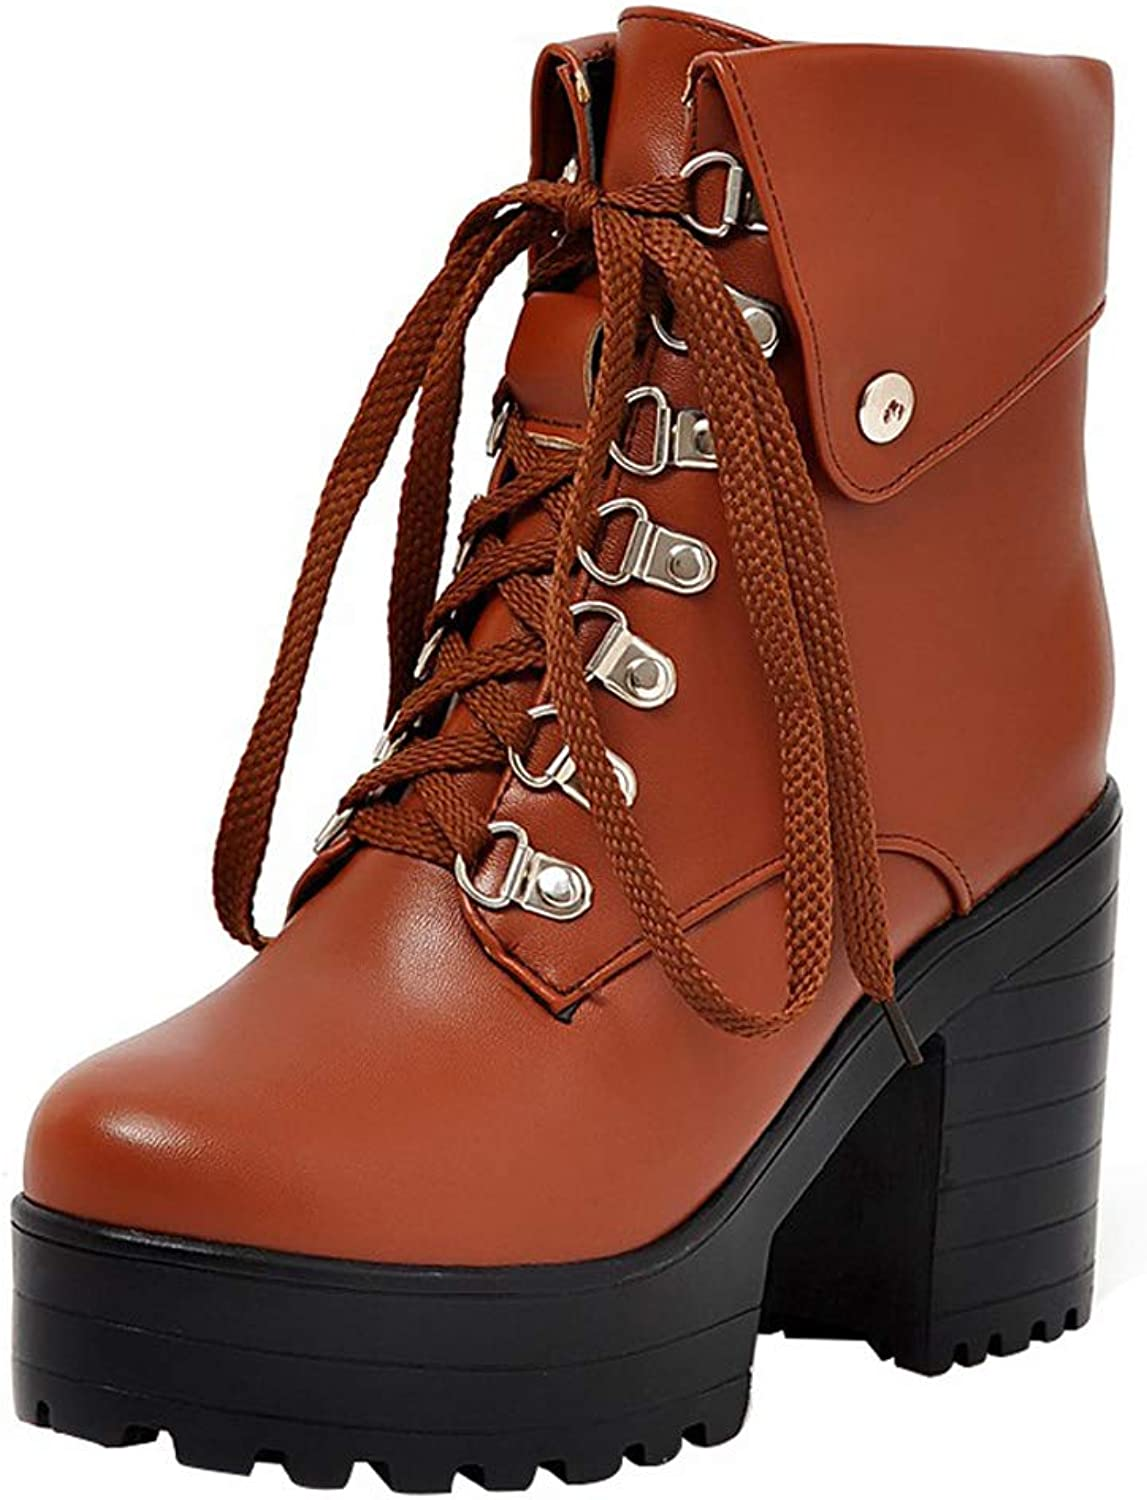 Vitalo Women Lace Up Chunky High Heel Ankle Platform Boots Autumn Winter Booties